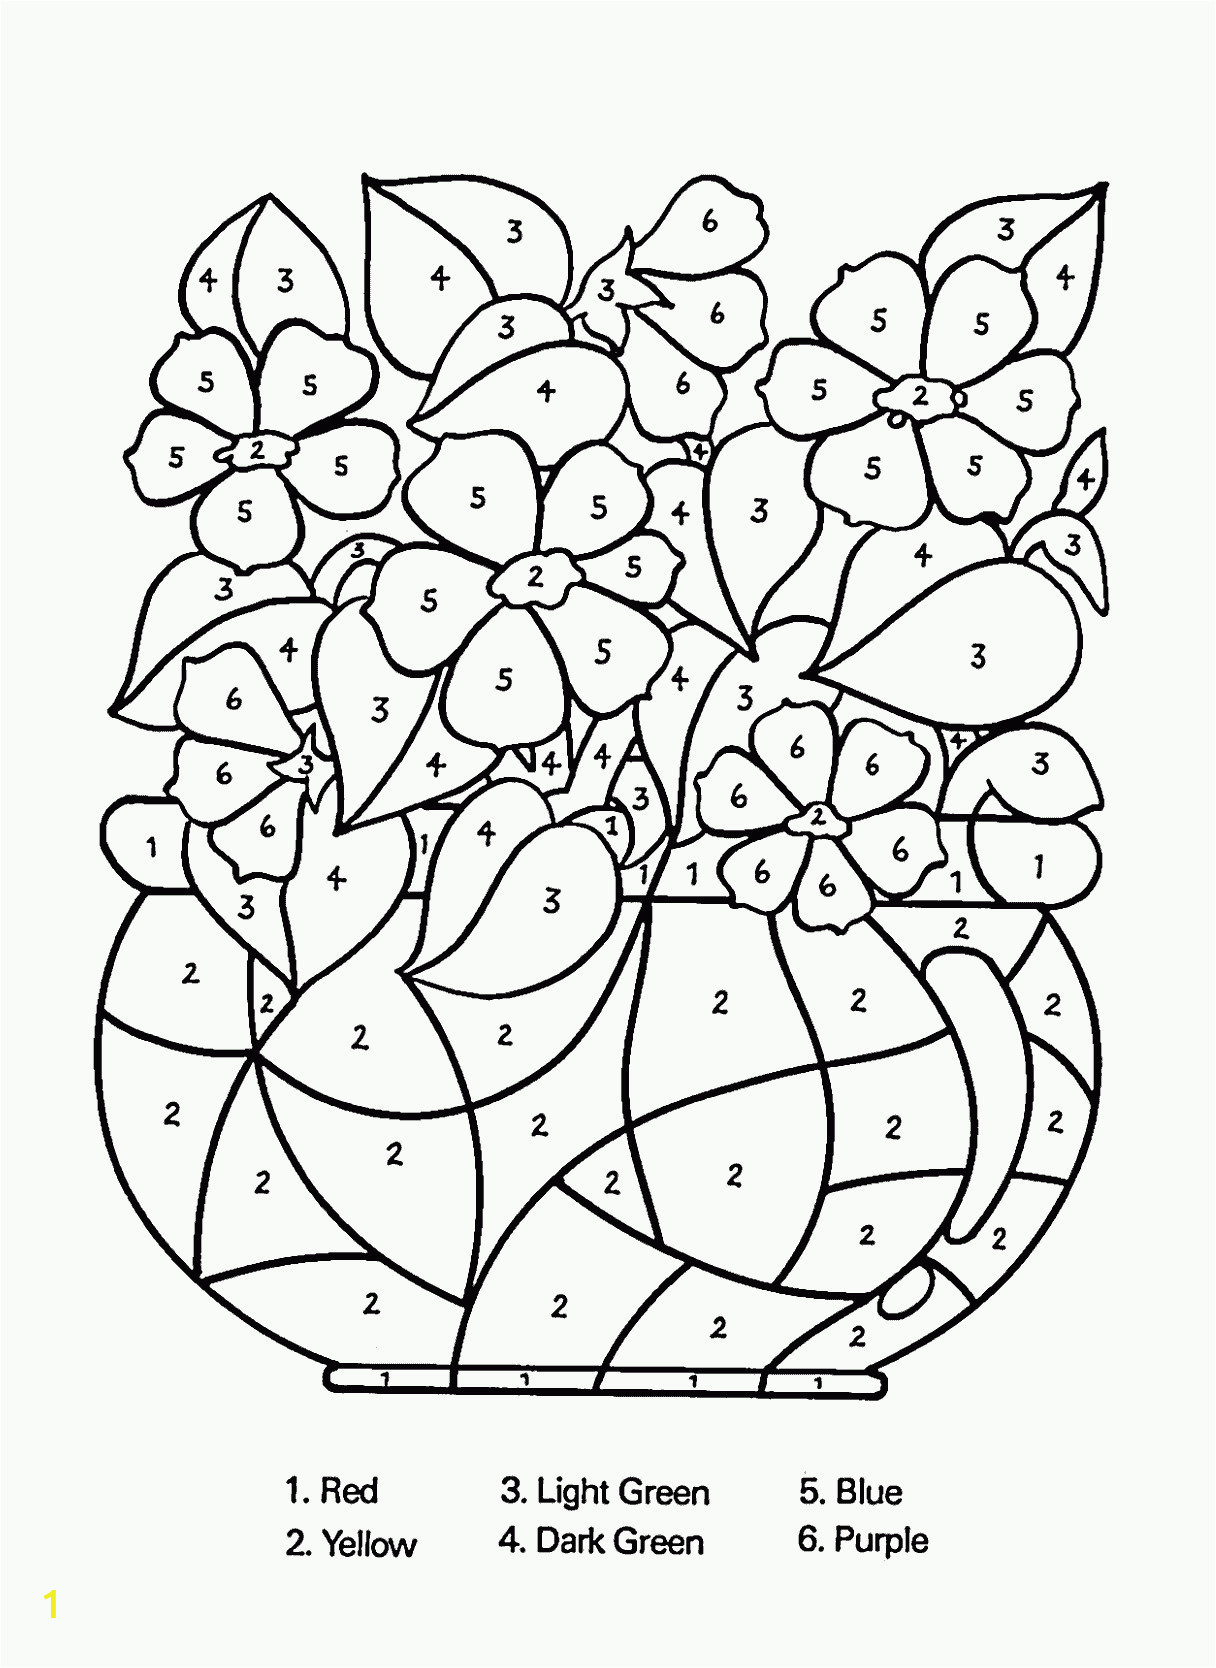 Oriental Trading Free Fun Halloween Coloring Pages